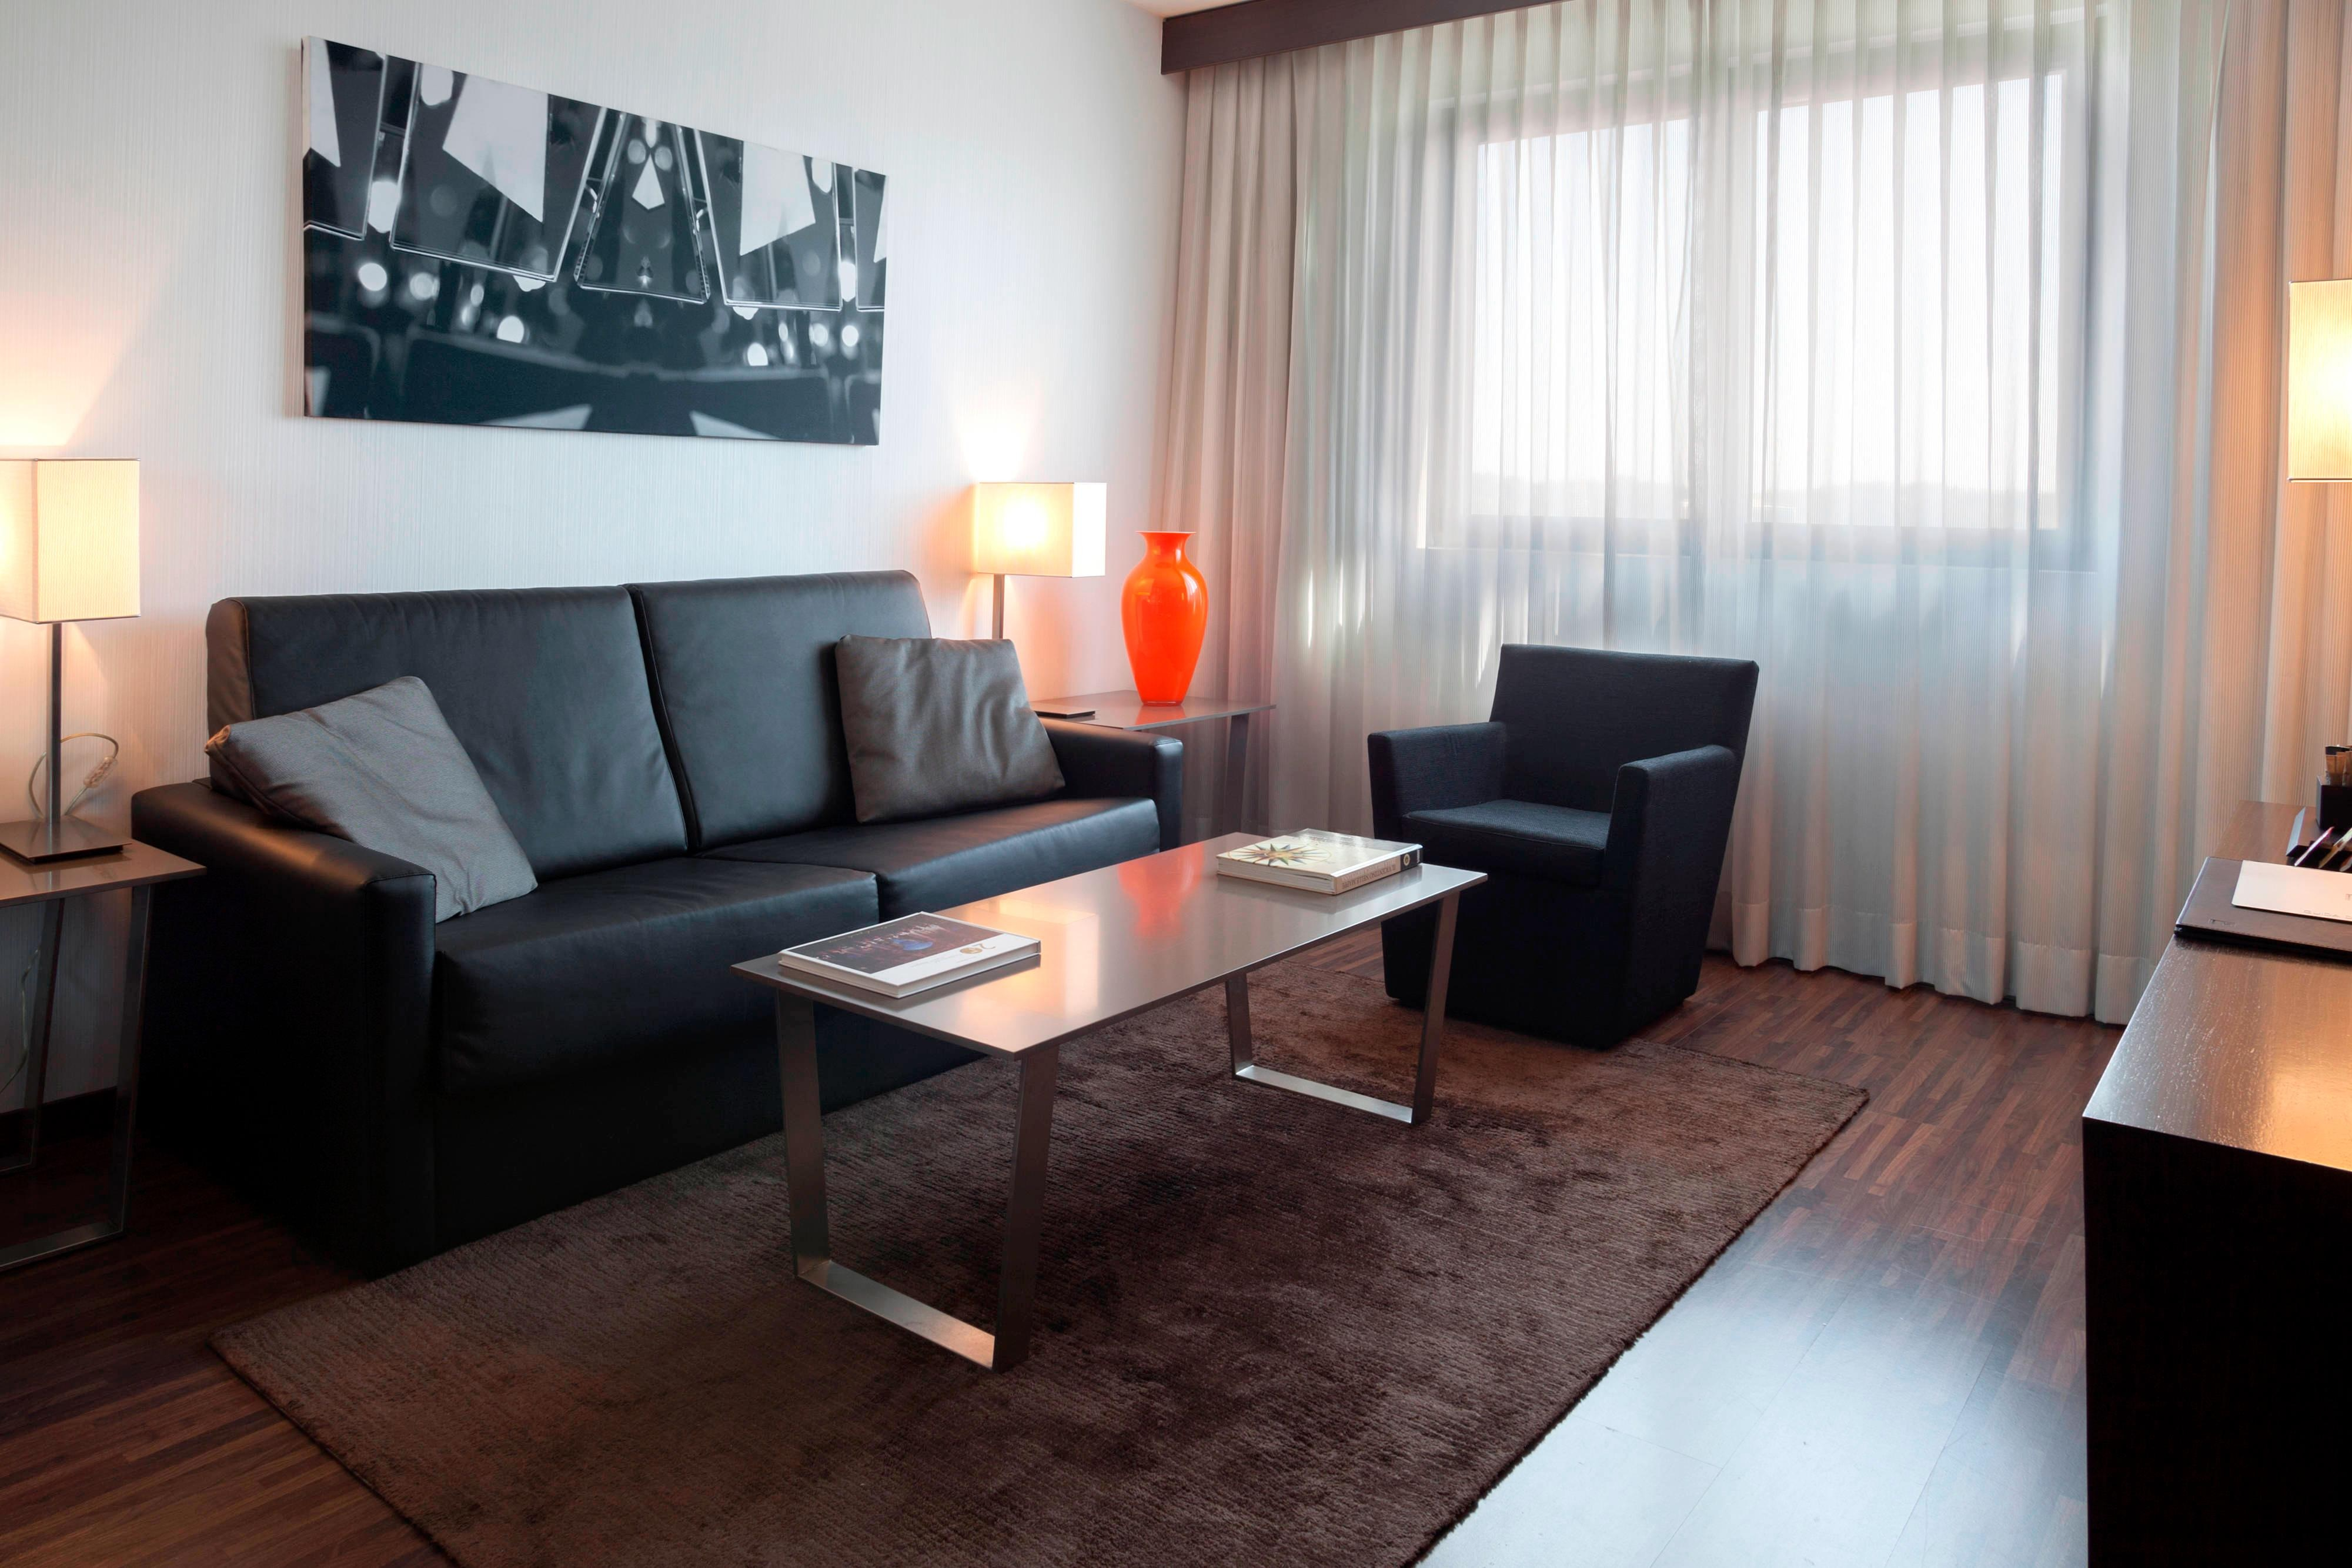 VICENZA_HOTEL_SUITE